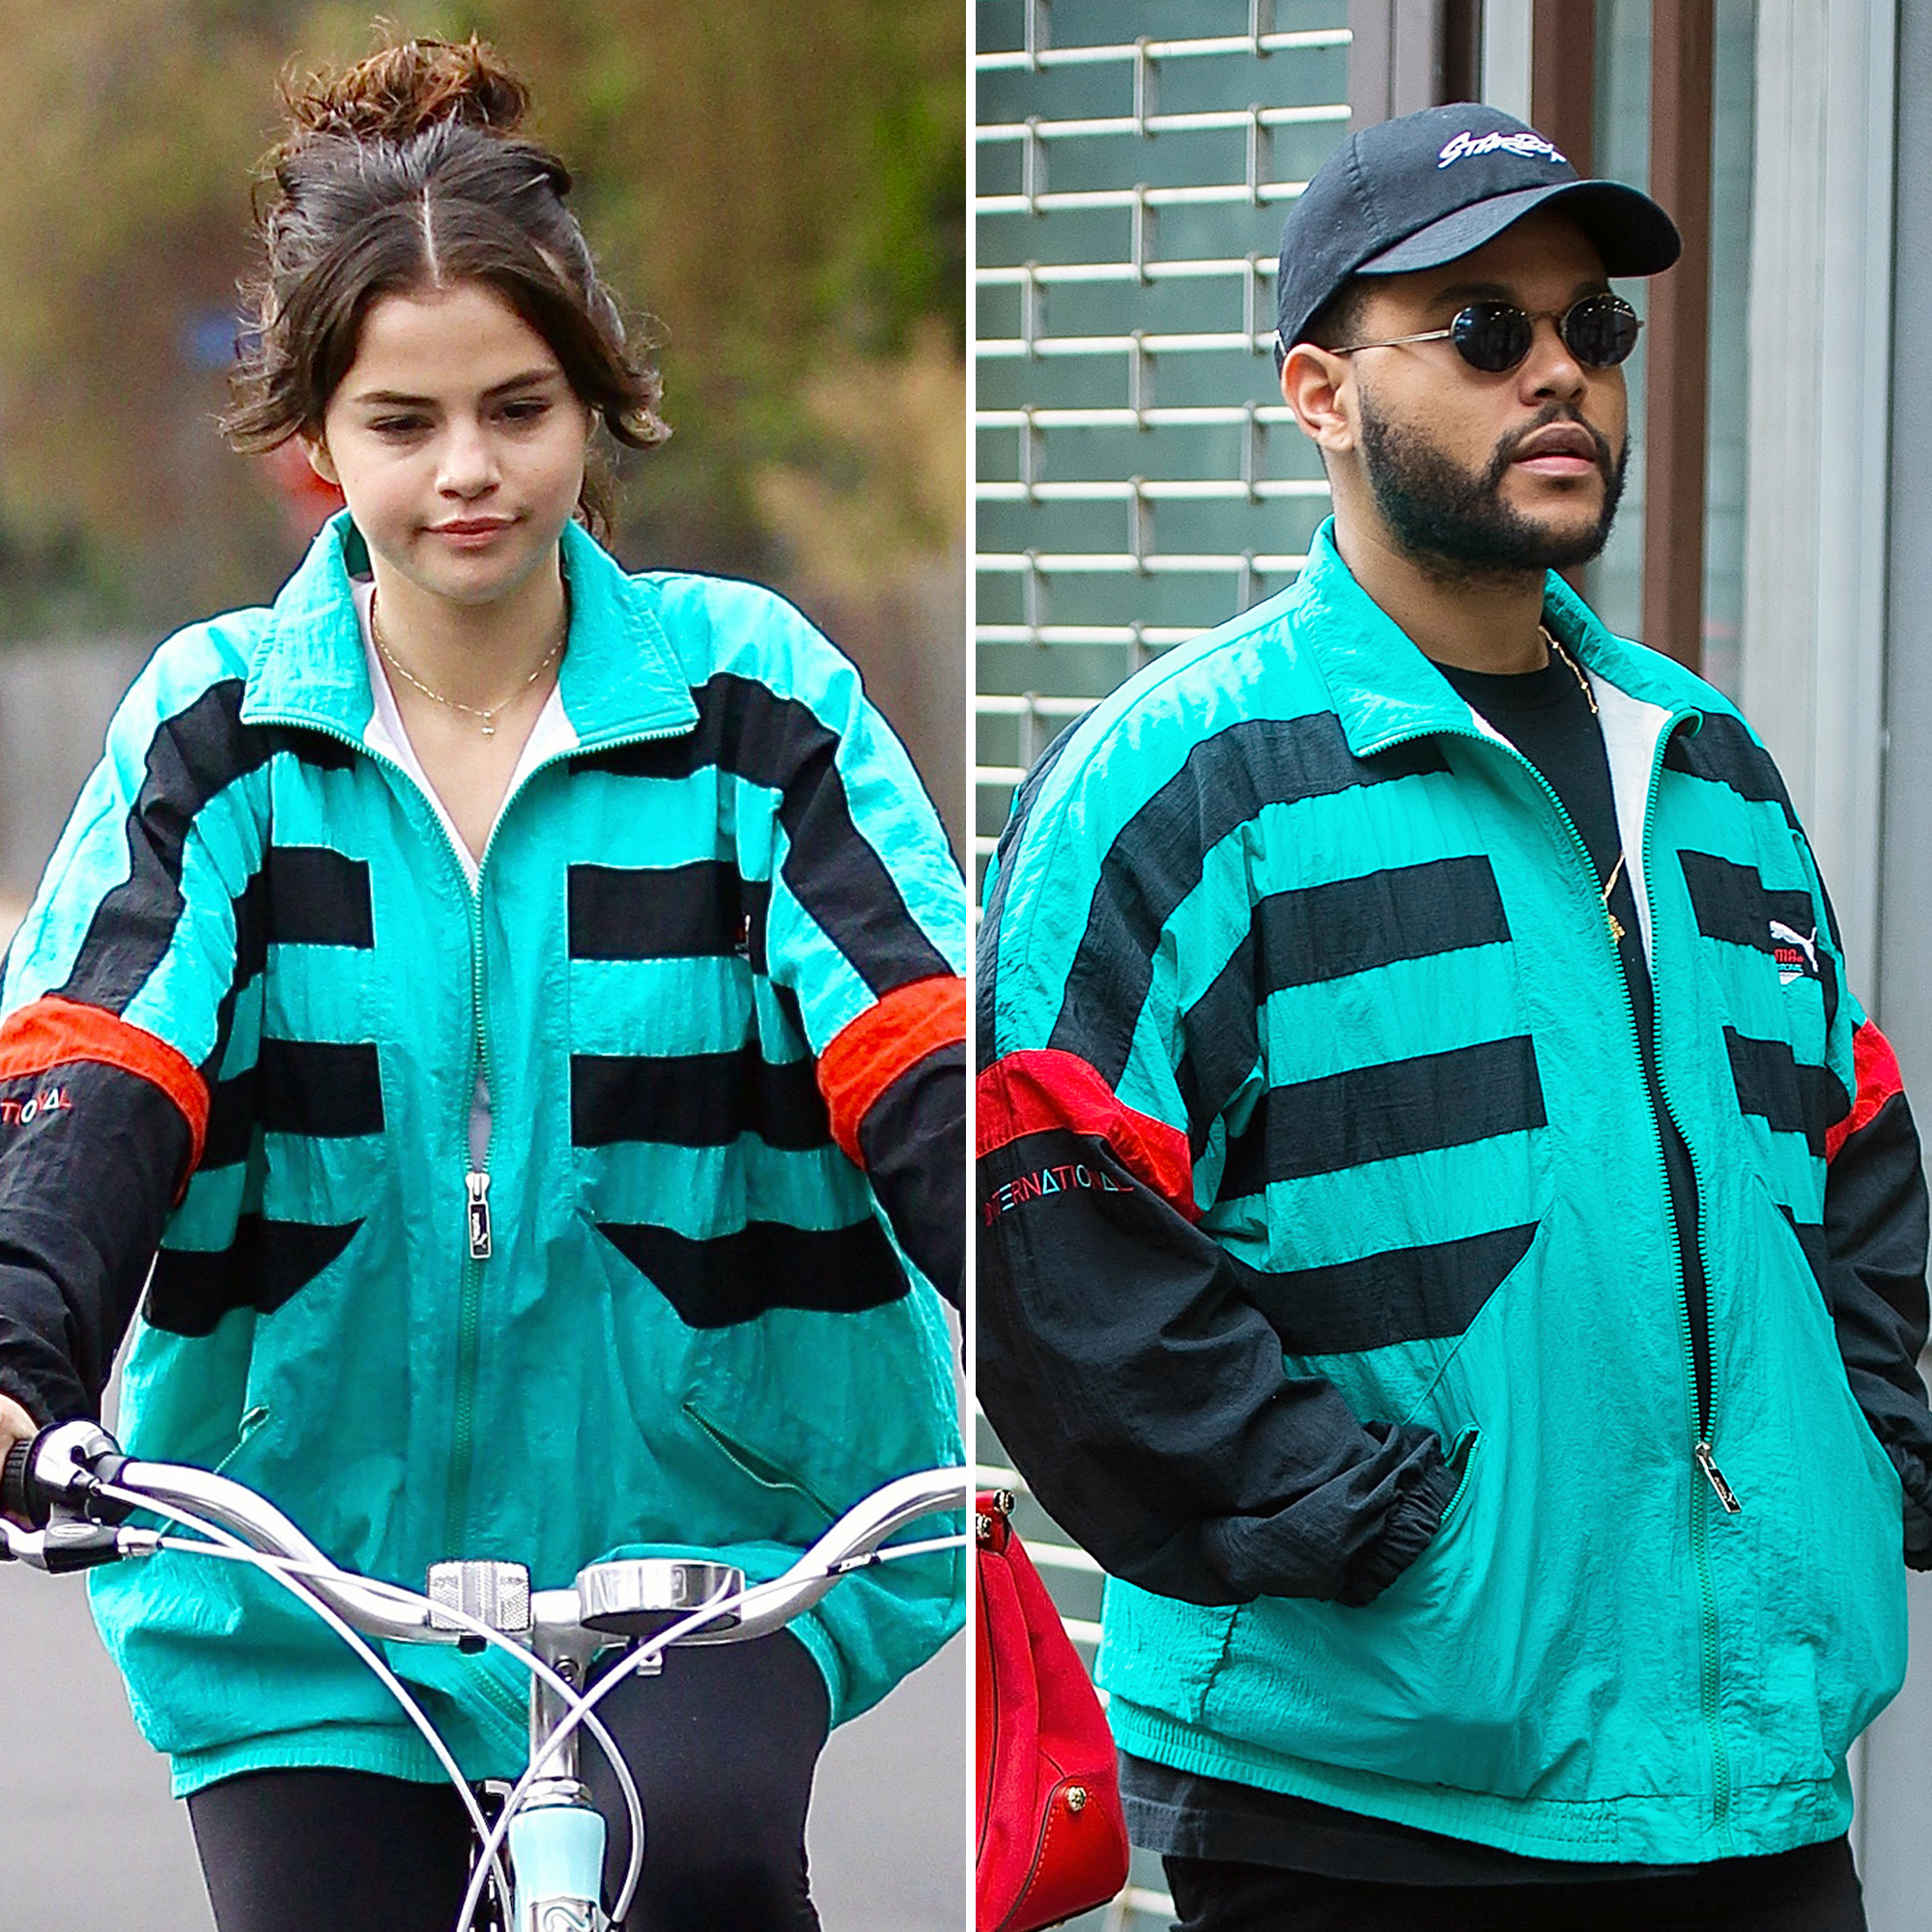 Selena Gomez The Weeknd jacket